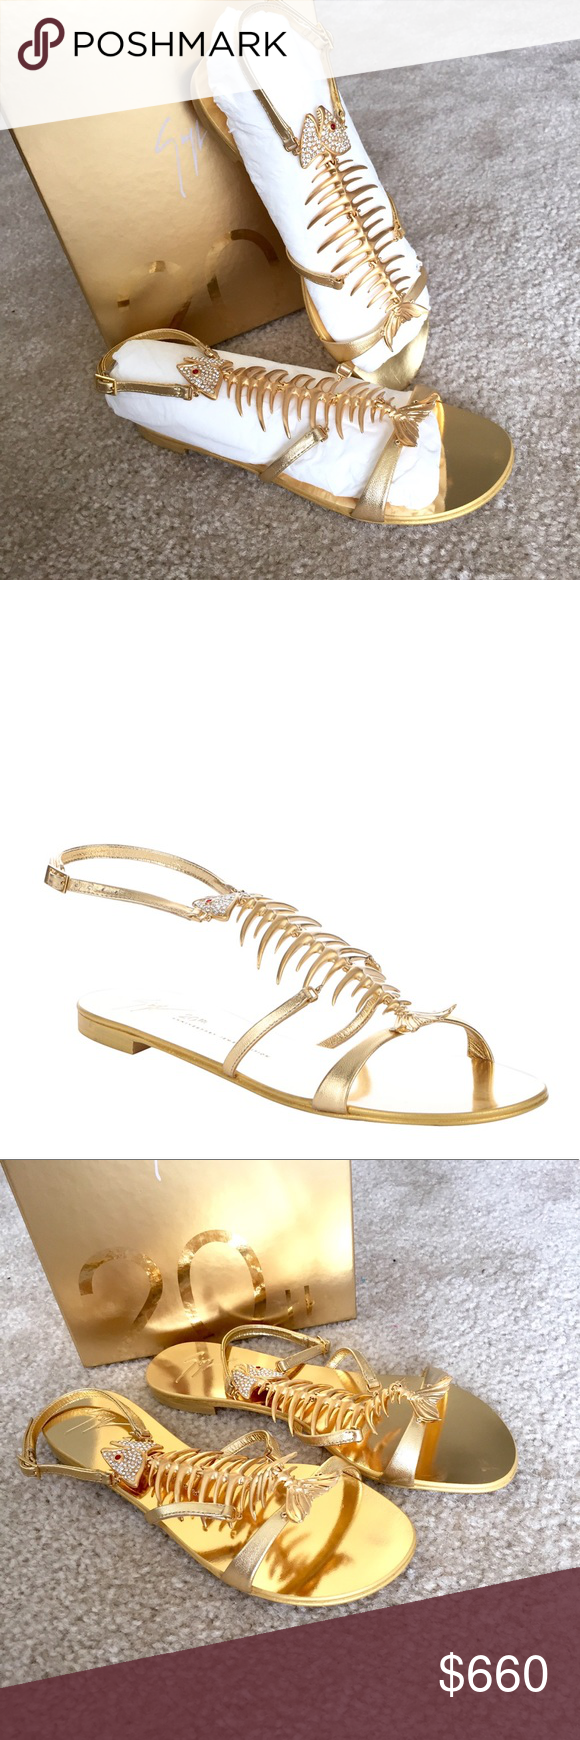 420b4ef5e45ad GIUSEPPE ZANOTTI Gold Leather Fish Bone Sandals GIUSEPPE ZANOTTI Gold  Metallic Leather '20th Anniversary'